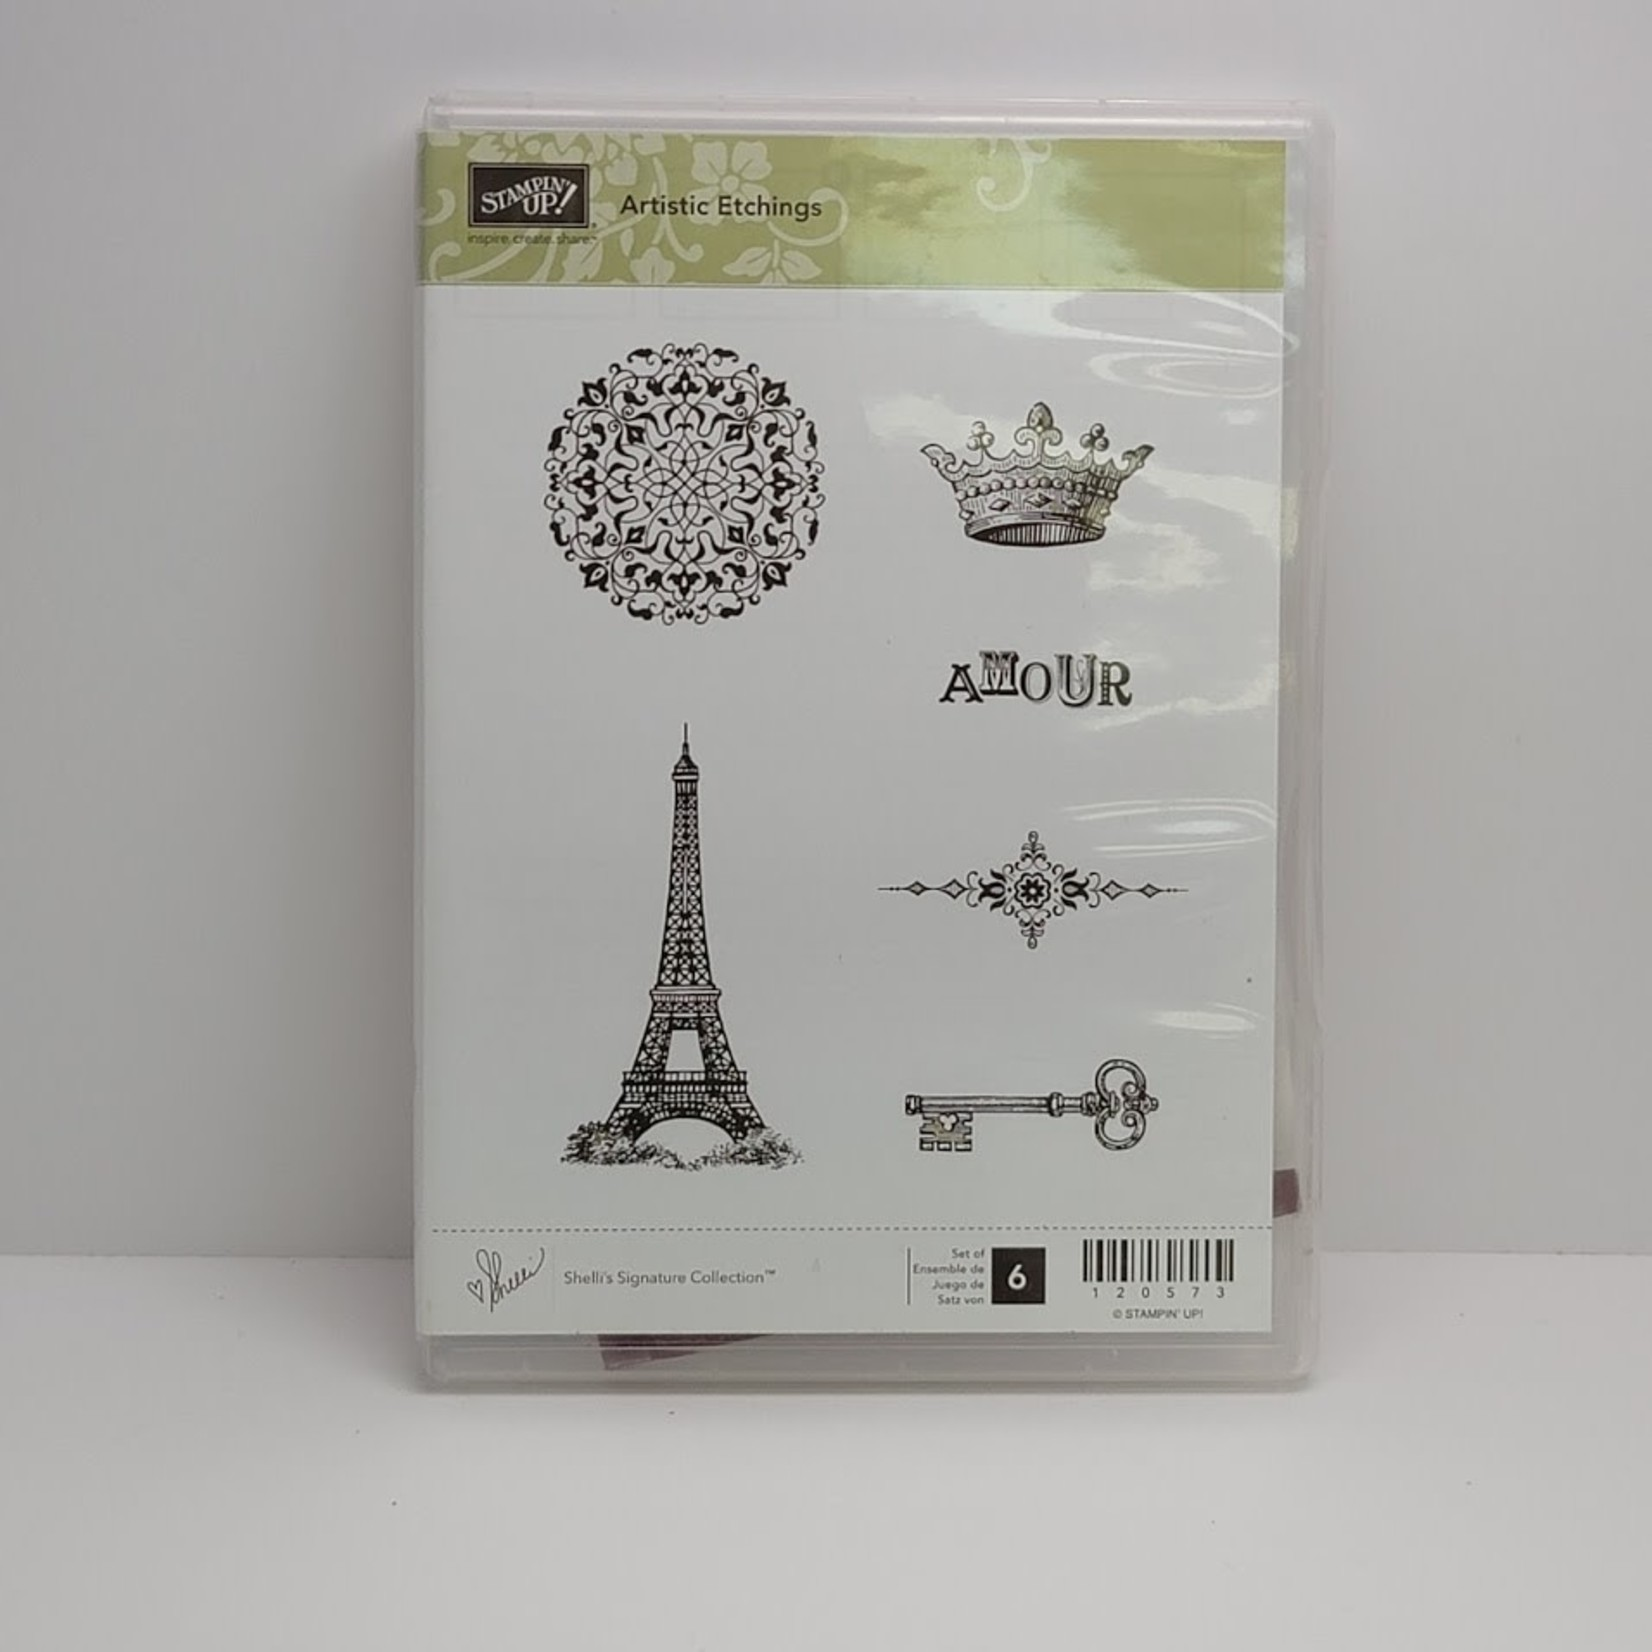 Stampin' Up Stampin' up - Cling Stamps - Artistic Etchings